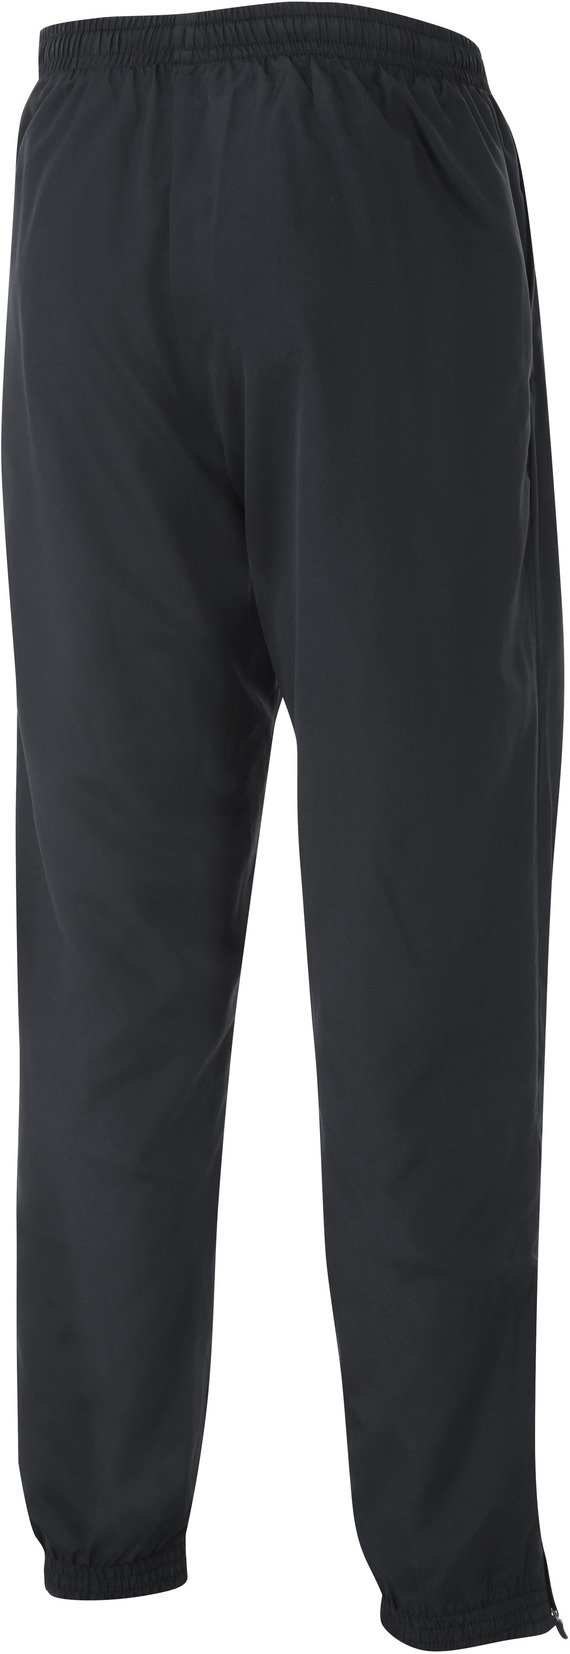 TAPERED WOVEN PANTS JUNIOR